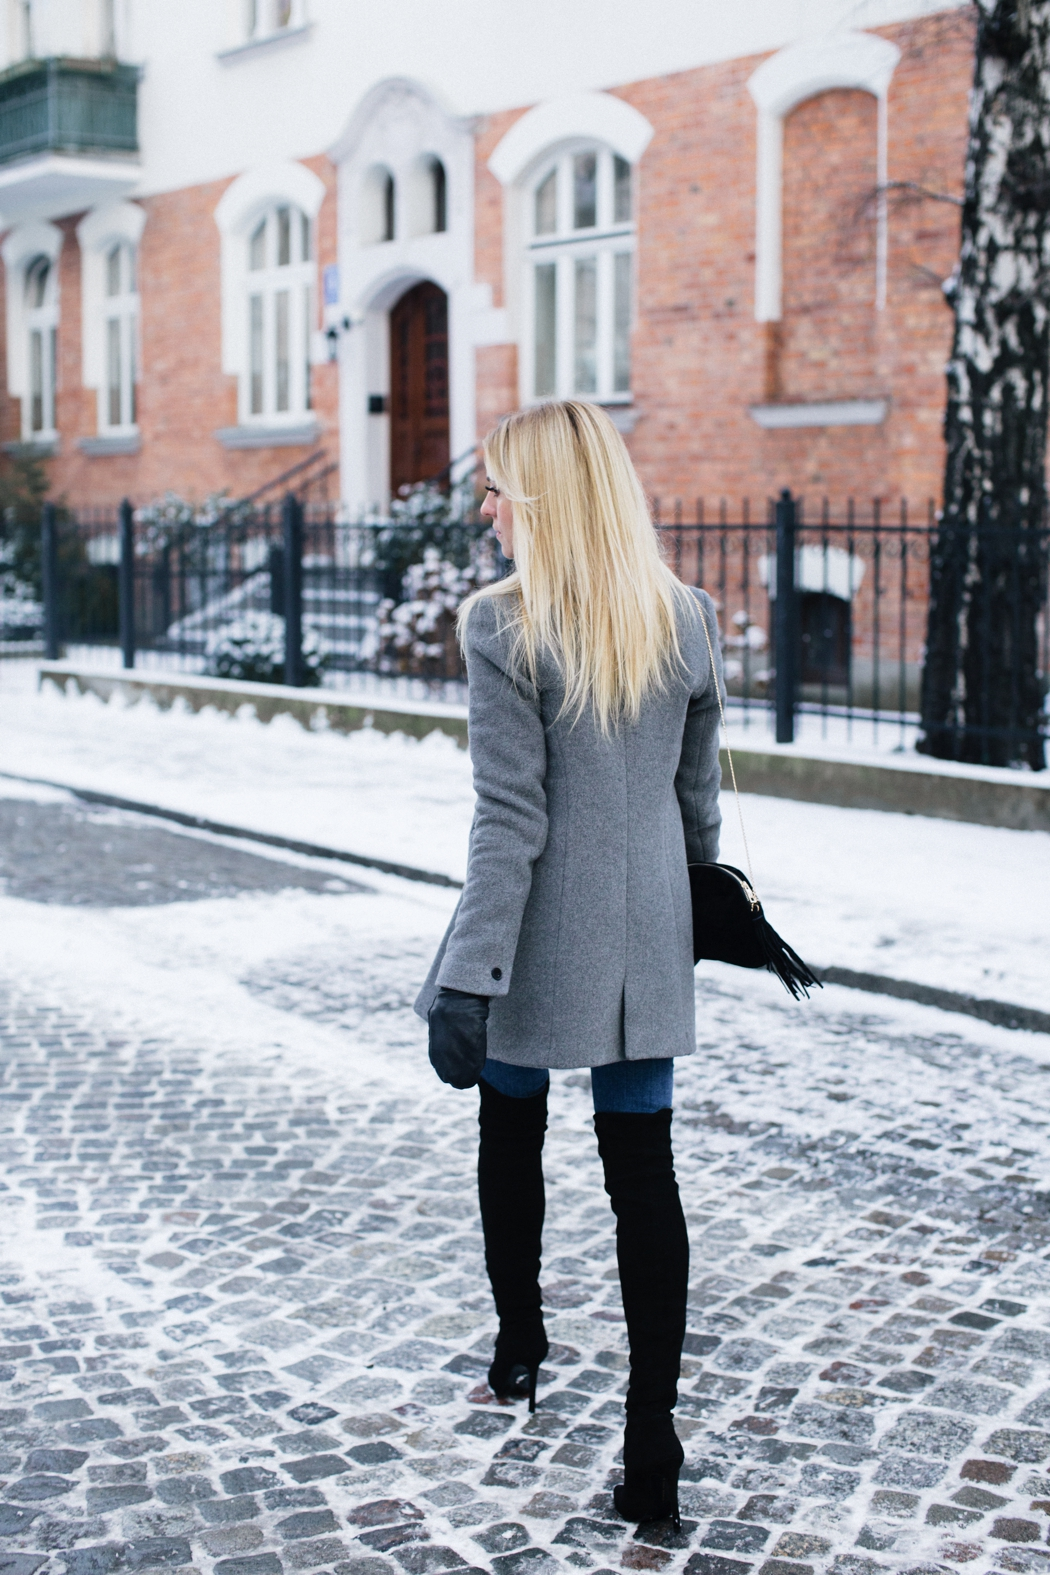 Though perhaps not the most practical choice for the snow, there's no denying that these stunning thigh high boots make Katarzyna Tusk's casual outfit of jeans and a coat ten times more sophisticated; we love it! Bag: Bershka, Shoes/Jeans: Zara, Sweater: Karen Millen, Coat: MLE Collection, Gloves: Cos.